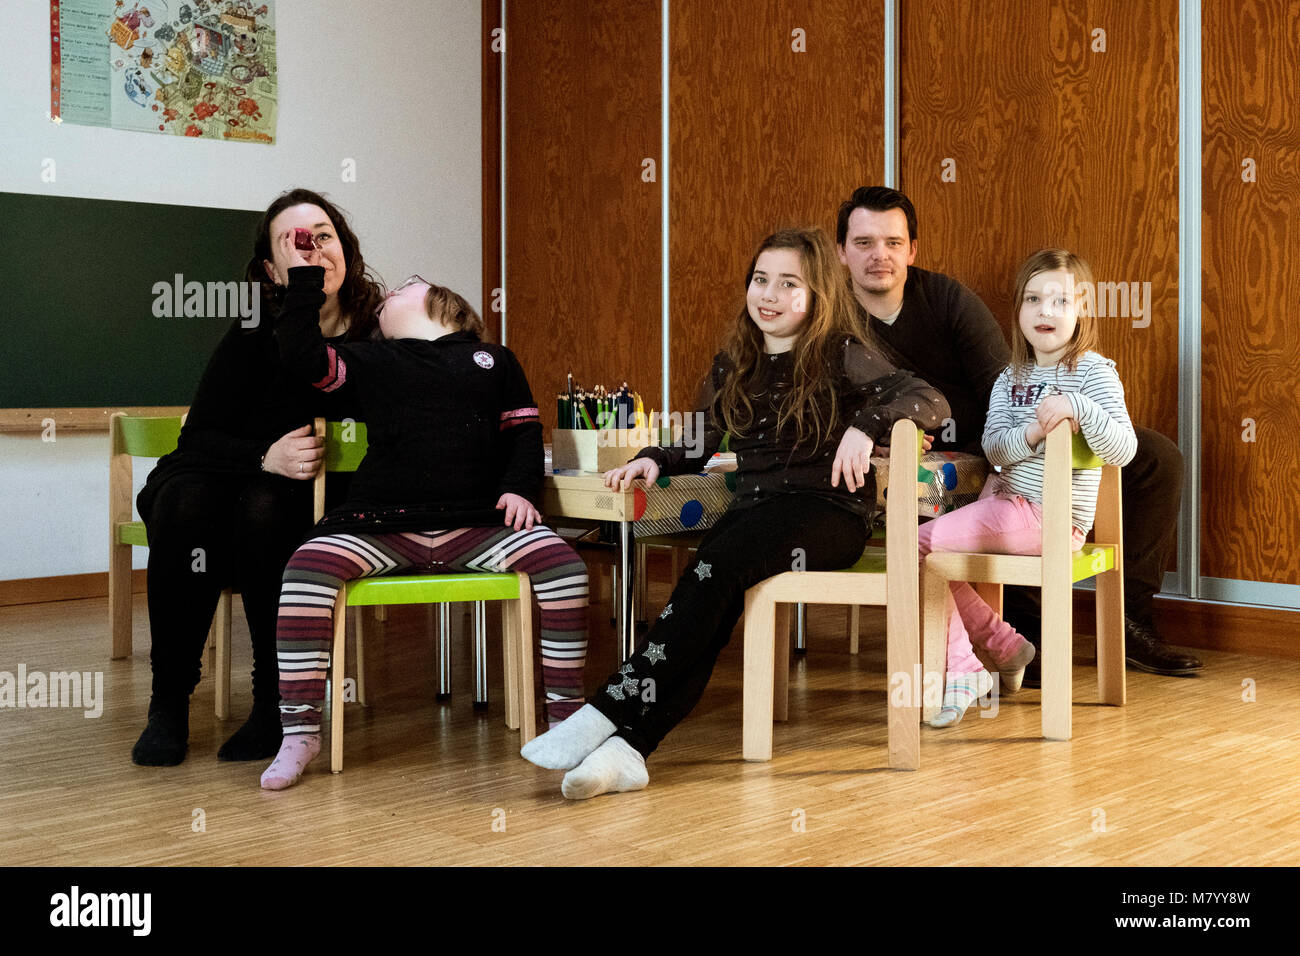 08 February 2018, Germany, Oranienburg: Nora (2nd L), a child with Down's syndrome, sits between her parents - Stock Image